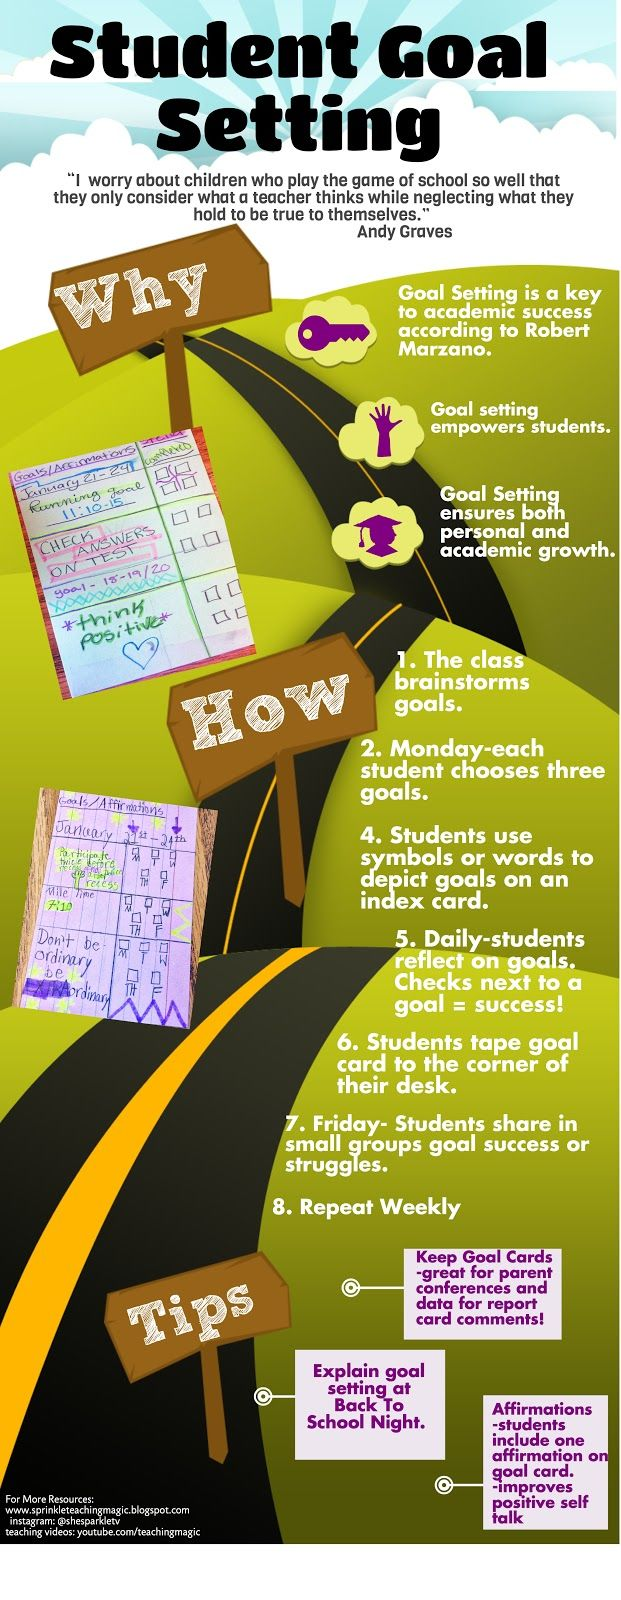 Student Goal Setting the Gold Standard- Affirmations the Silver Lining